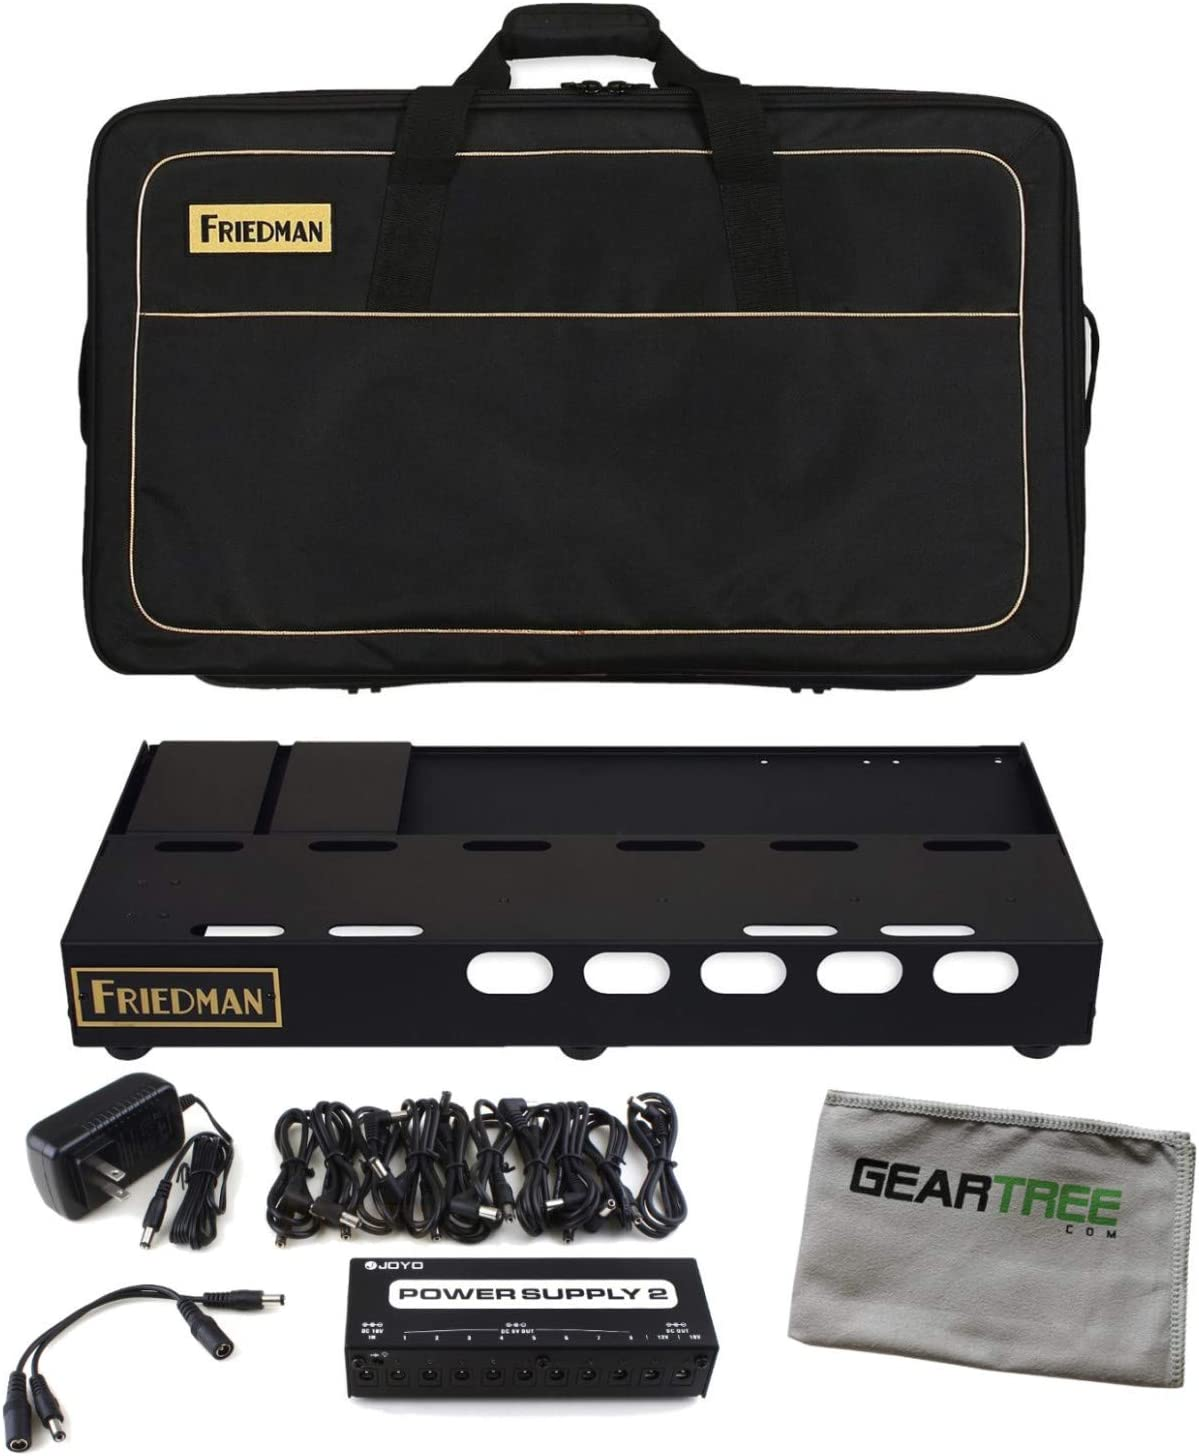 Friedman Tour Pro 1525 15''' x 25''' Pedal Board with Bag, Accessories and Riser